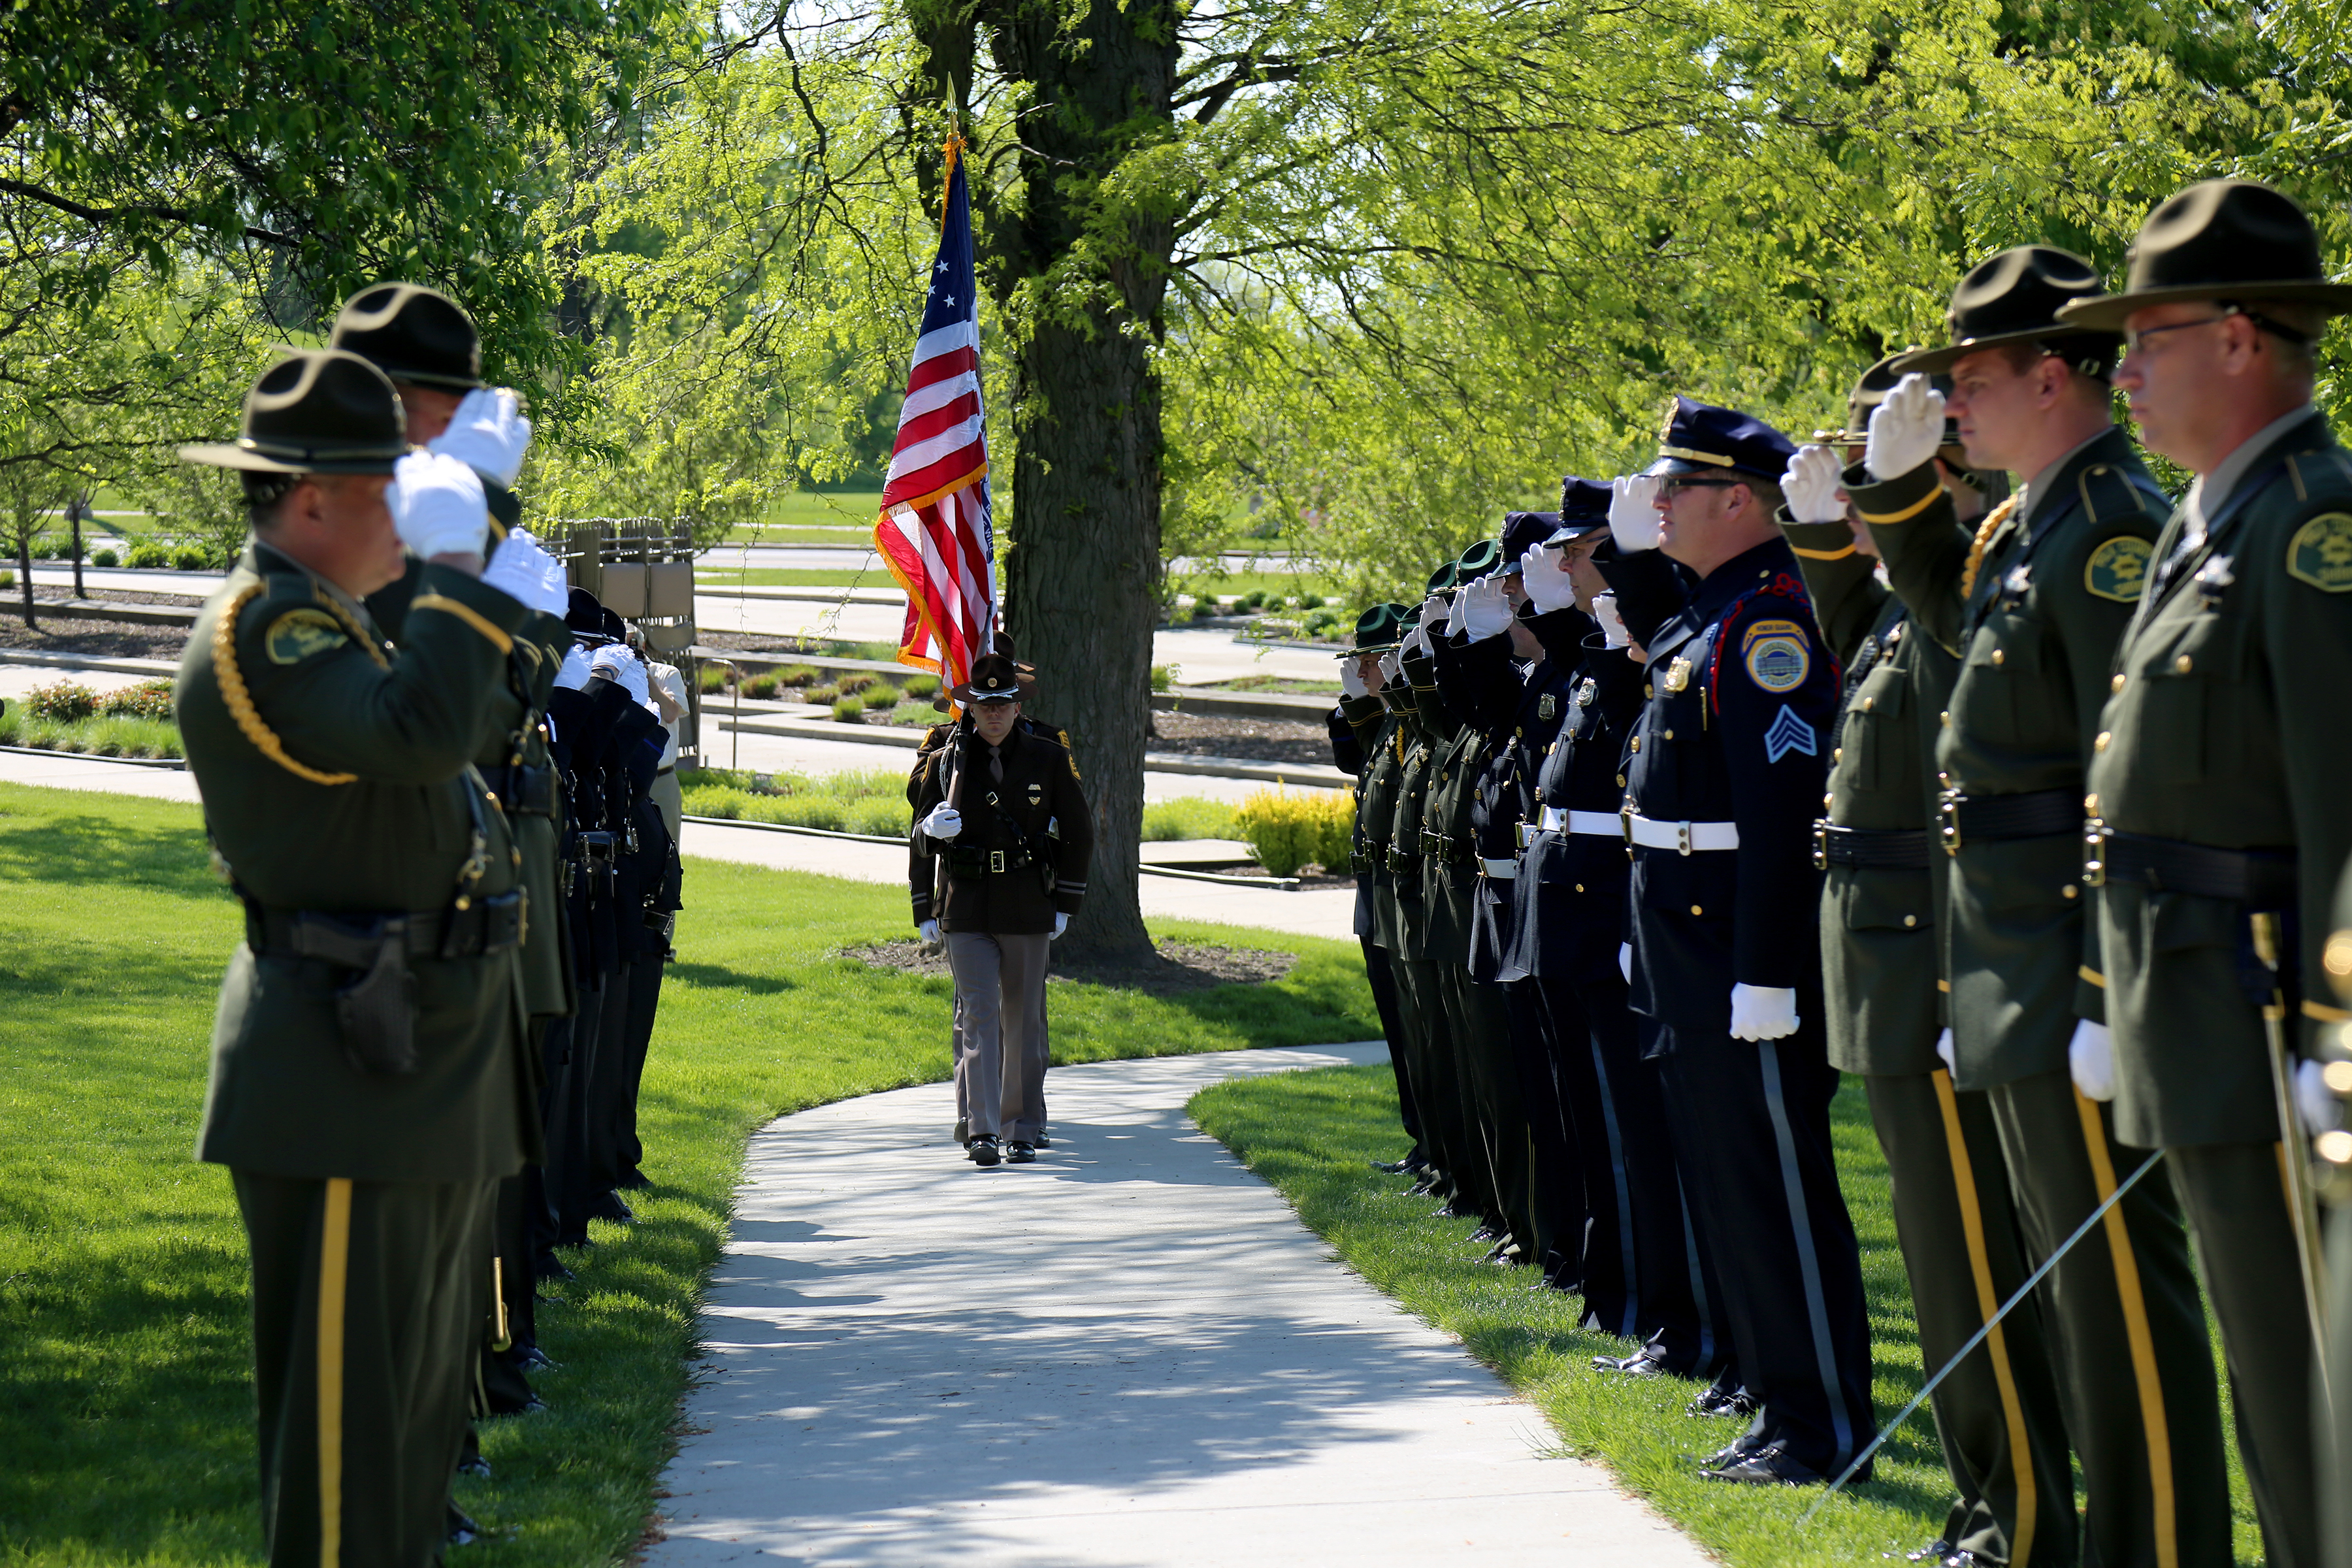 Sidewalk lined with law enforcement as Iowa State Patrol Color Guard walks to memorial.